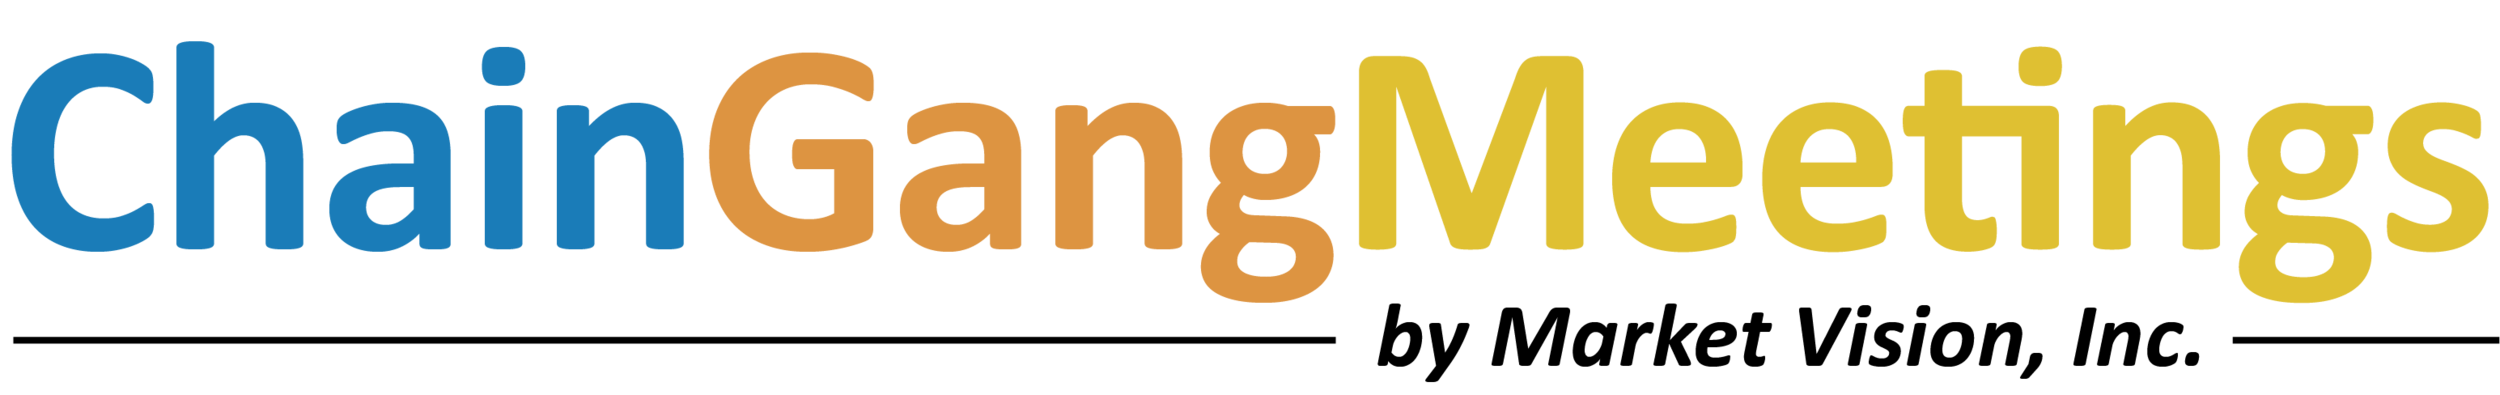 ChainGangMeetings LOGO.png